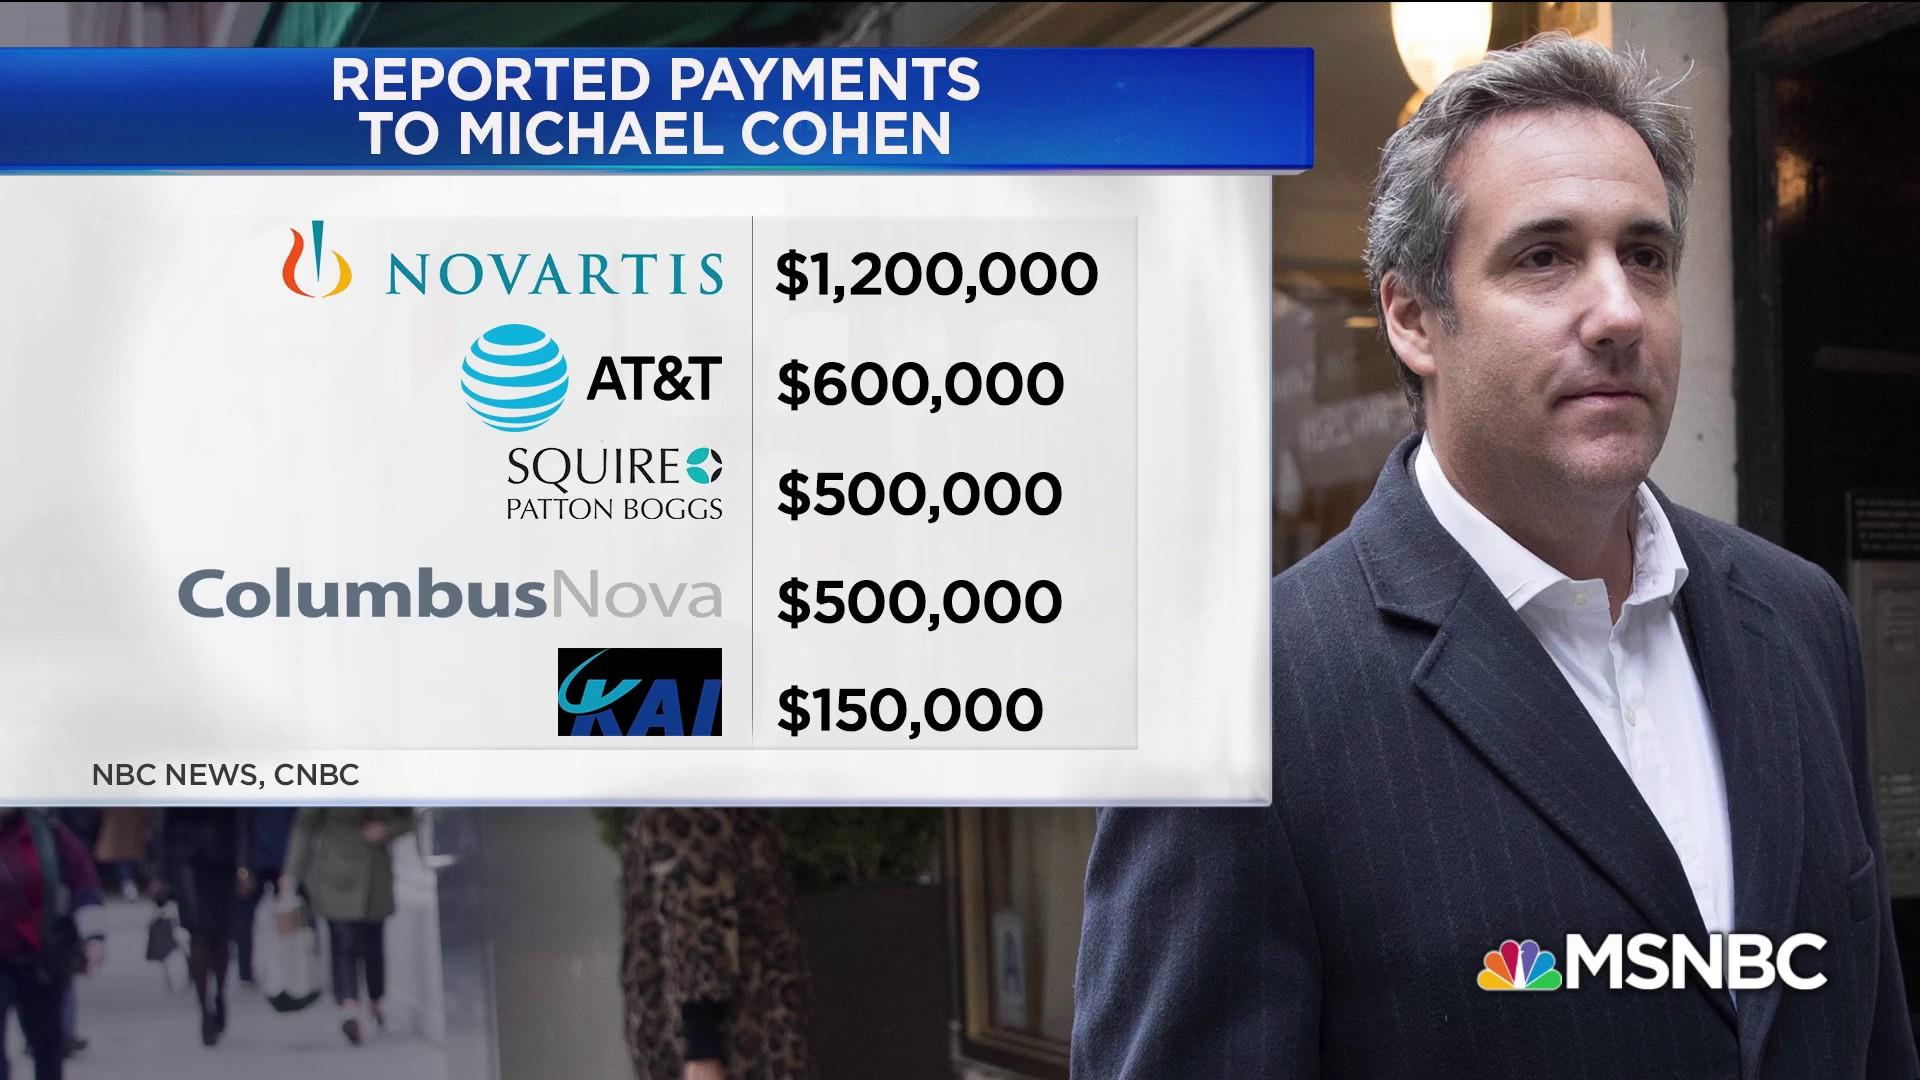 Are payments from AT&T and Novartis to Michael Cohen illegal?